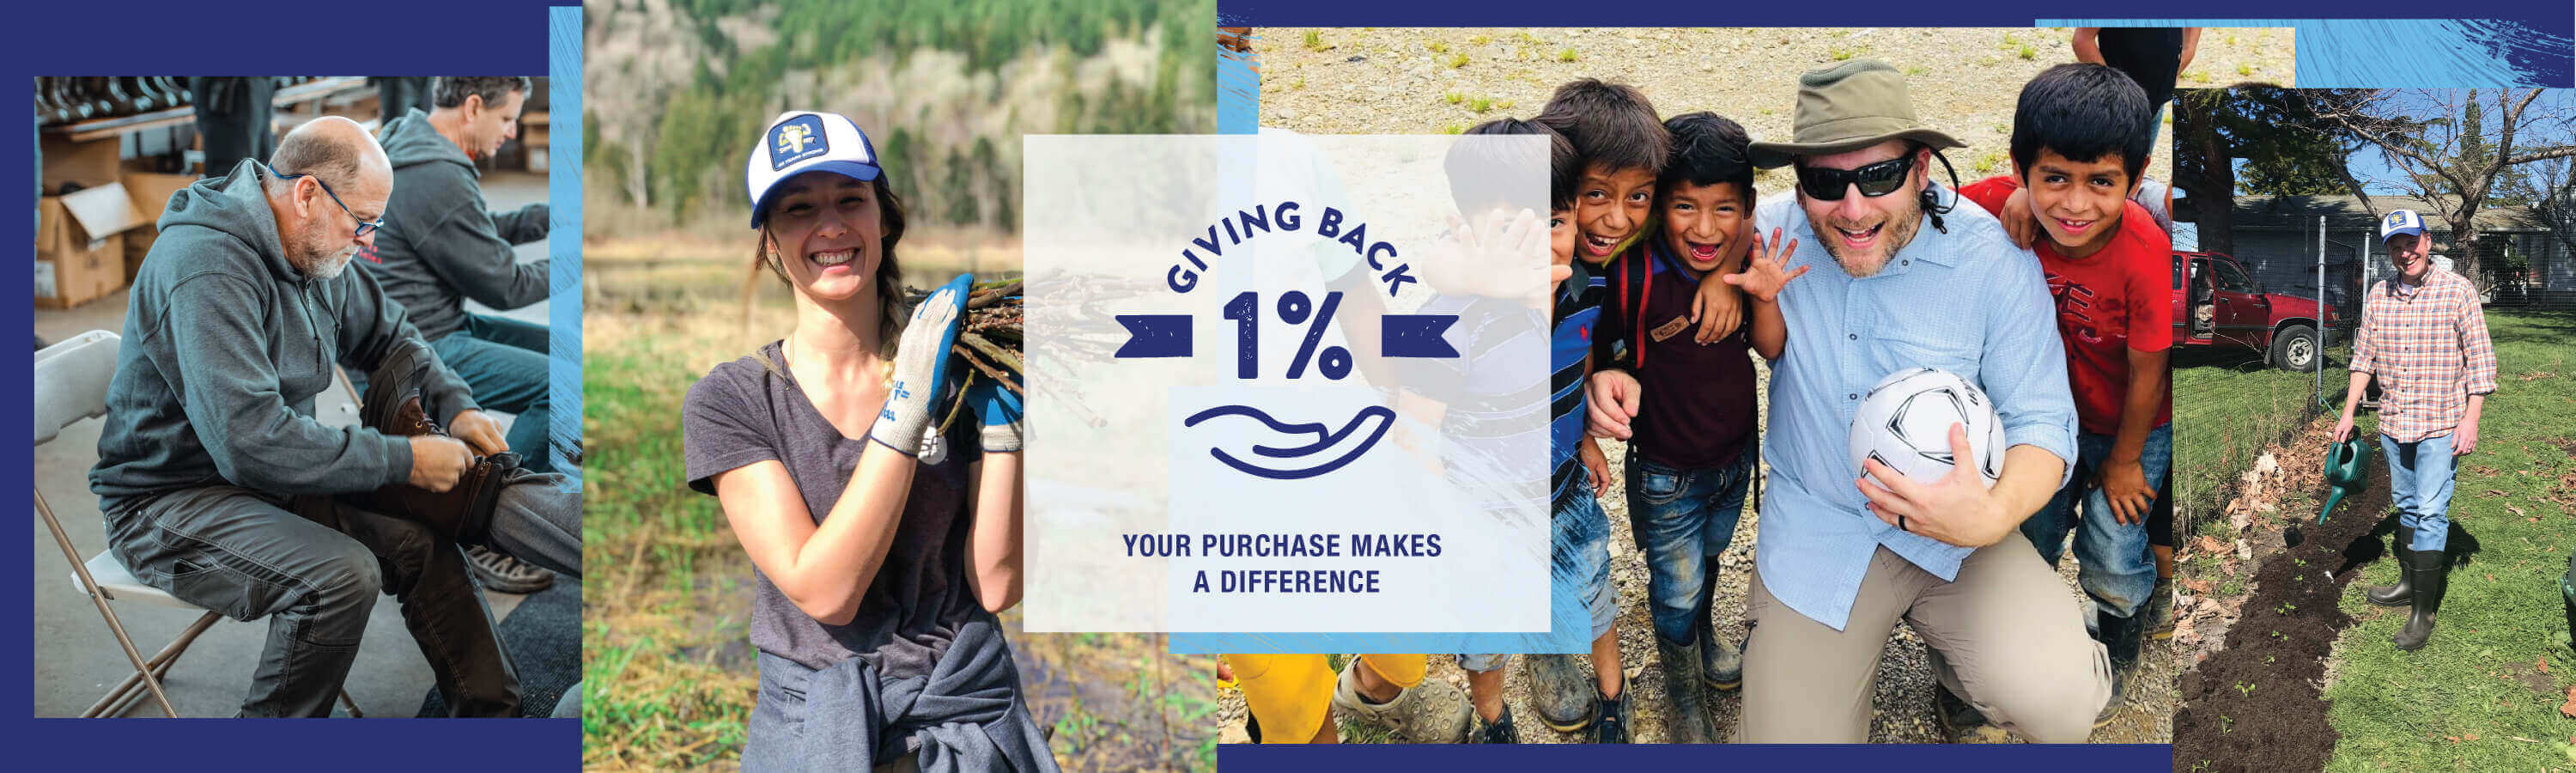 Giving Back 1% - Your Purchase Makes a Difference